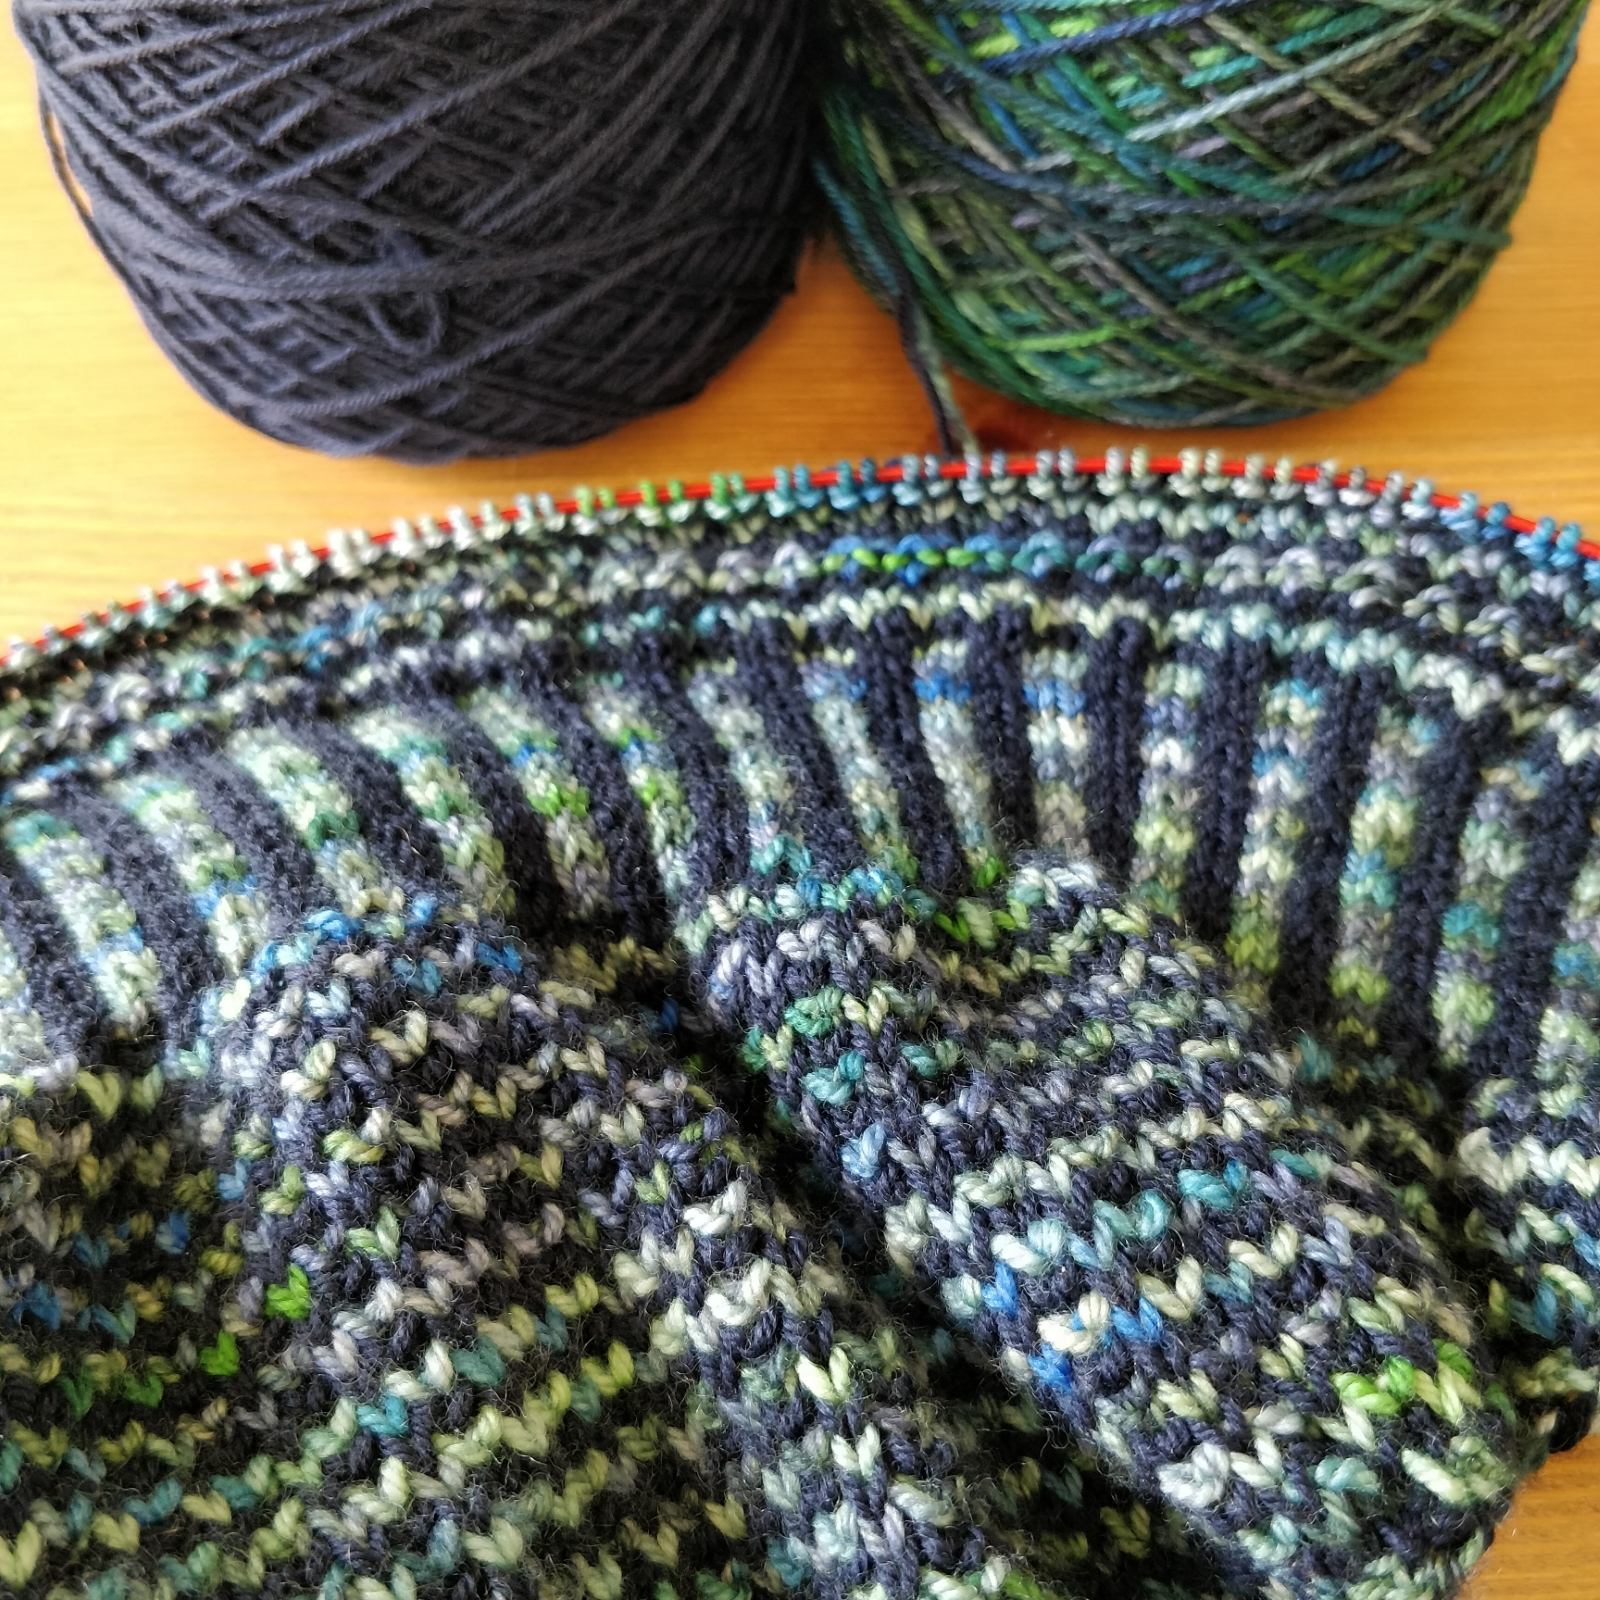 A closeup view of the green and blue stripes in the shawl. Horizontal stripe sections alternate with vertical.